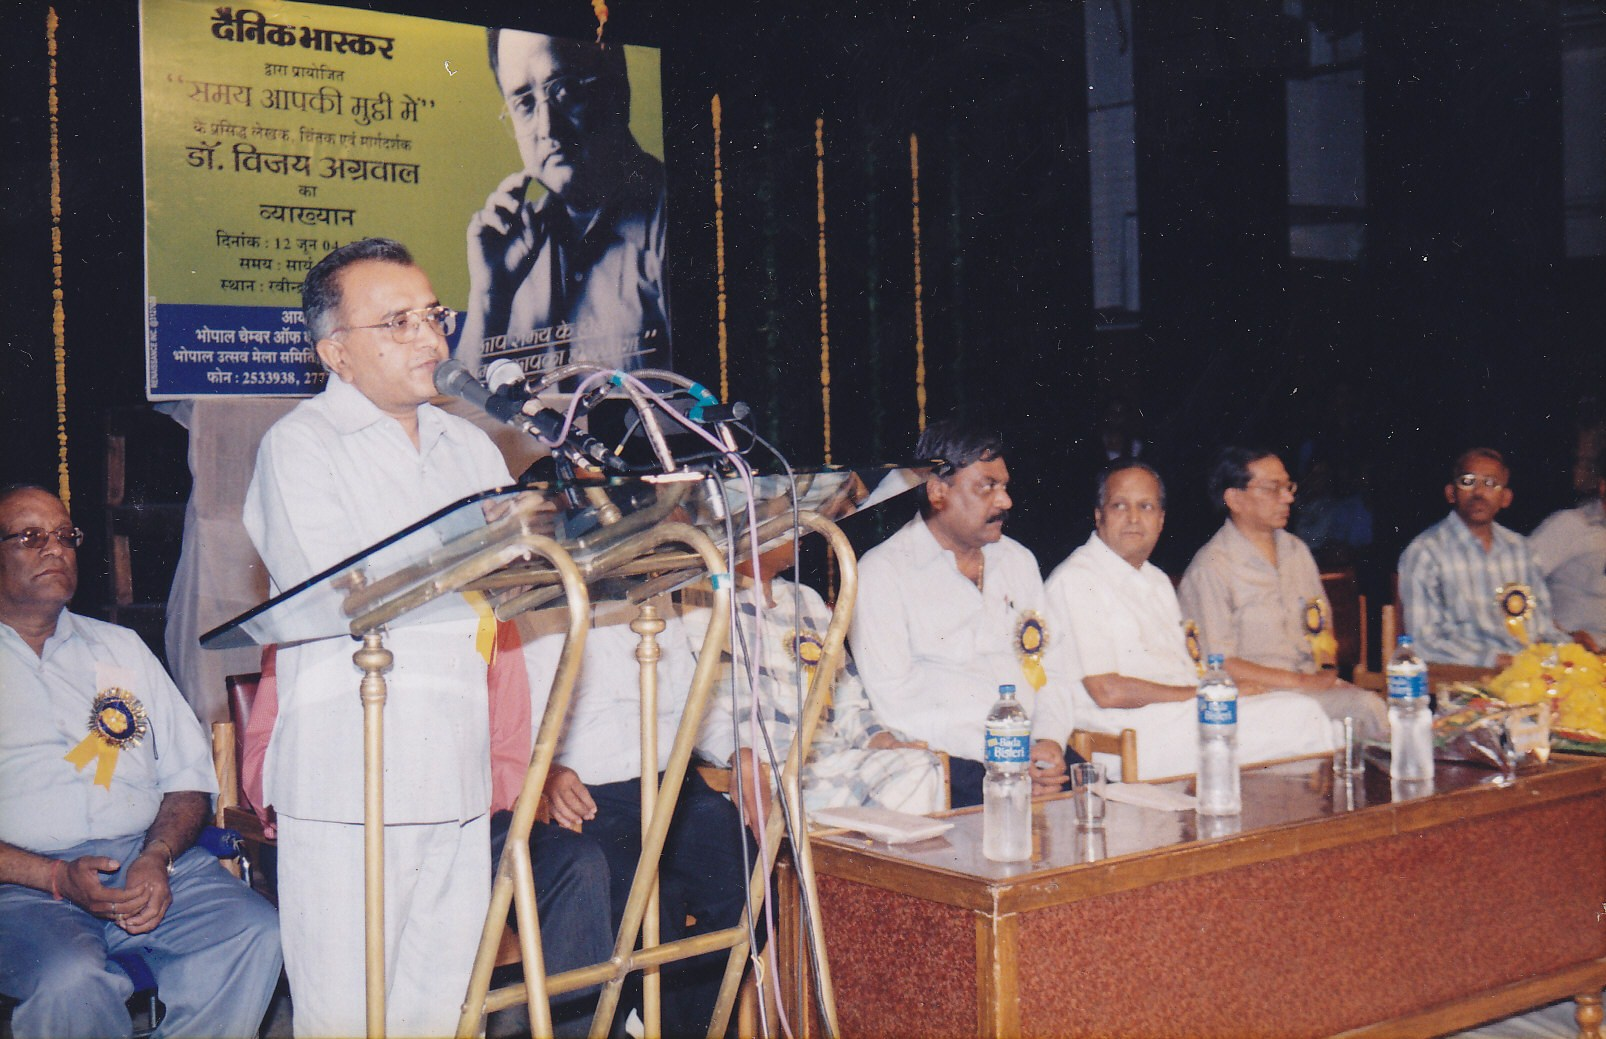 Addressing huge crowd during an open lecture organised by Dainik bhaskar in Bhopal